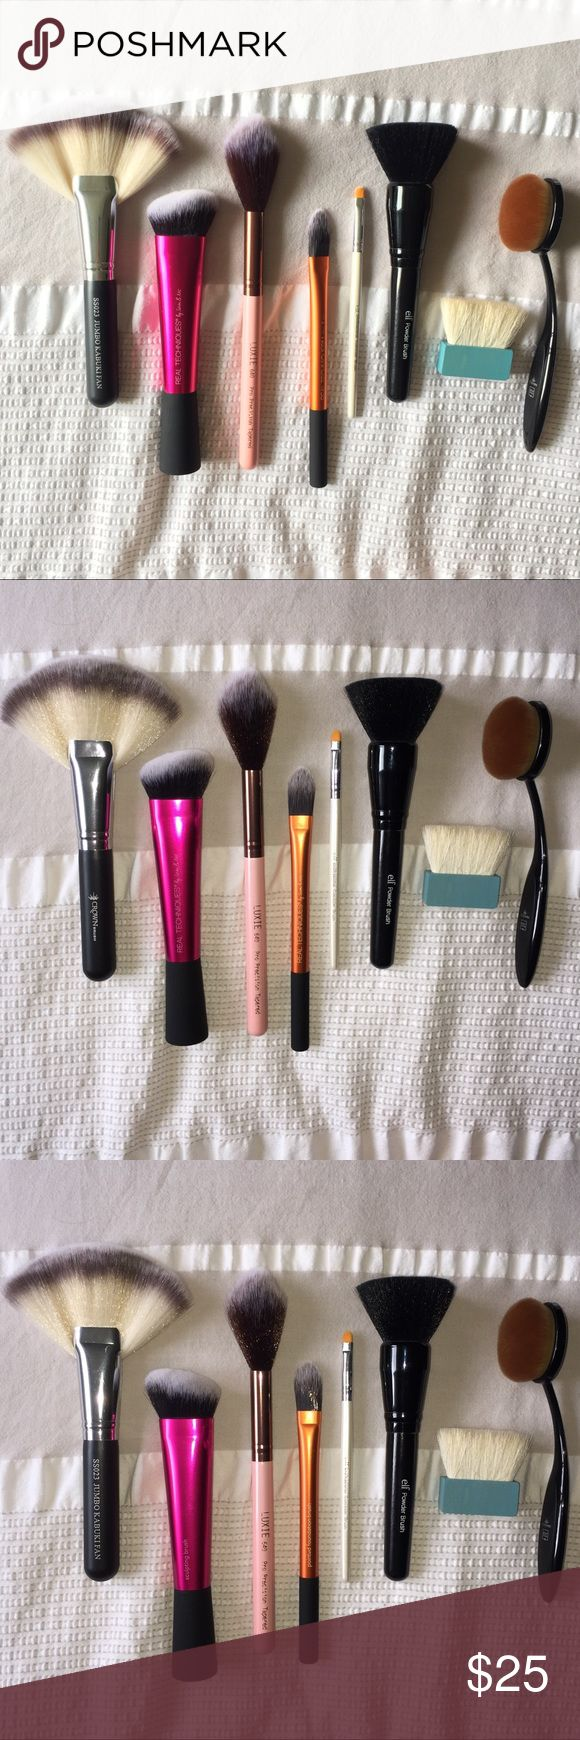 Makeup Brush Bundle From left to right:  Crown SS023 Jumbo Kabuki Fan Brush, Real Techniques Sculpting Brush, Luxie Beauty 640 Pro Precision Tapered Brush, Real Techniques Pointed Foundation Brush, elf Concealer Brush, elf Powder Brush, Benefit Hoola Bronzer Brush, Crown Pro Round Contour Brush Makeup Brushes & Tools